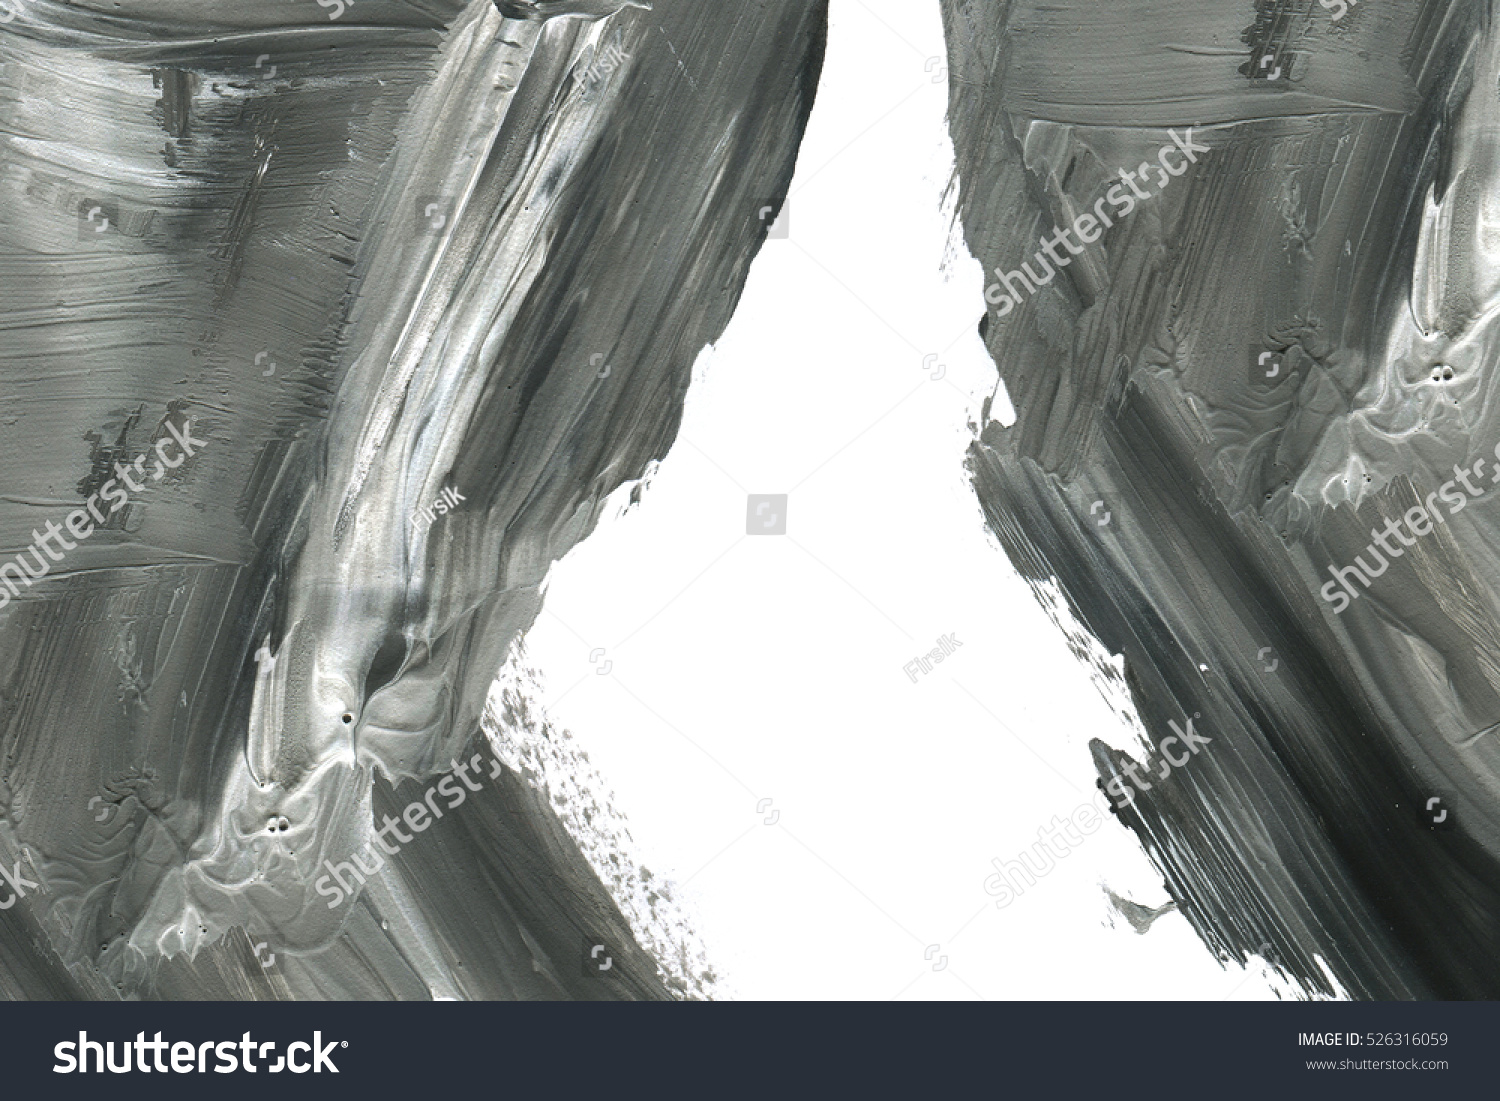 Marble style. Black and white paint stroke texture. Macro image of spackling paste. Wallpaper for web and game design. Drywall mud art.